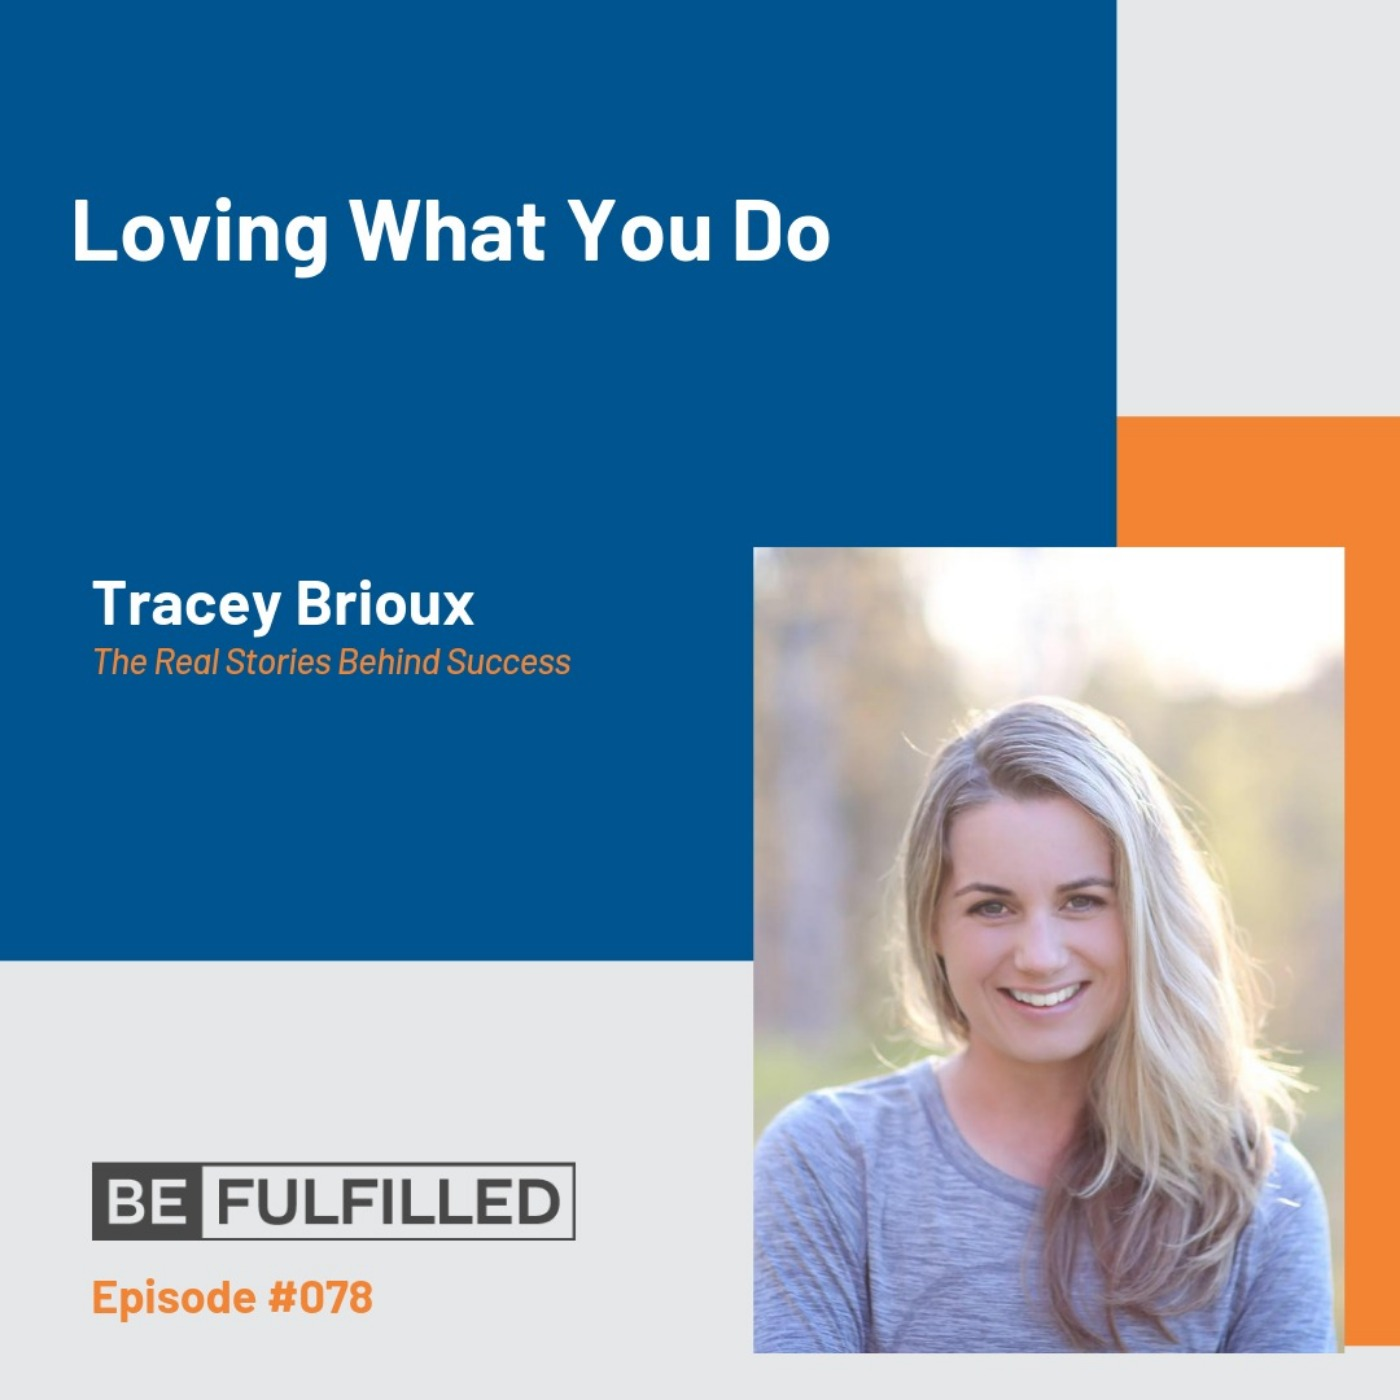 Loving What You Do - Tracey Brioux